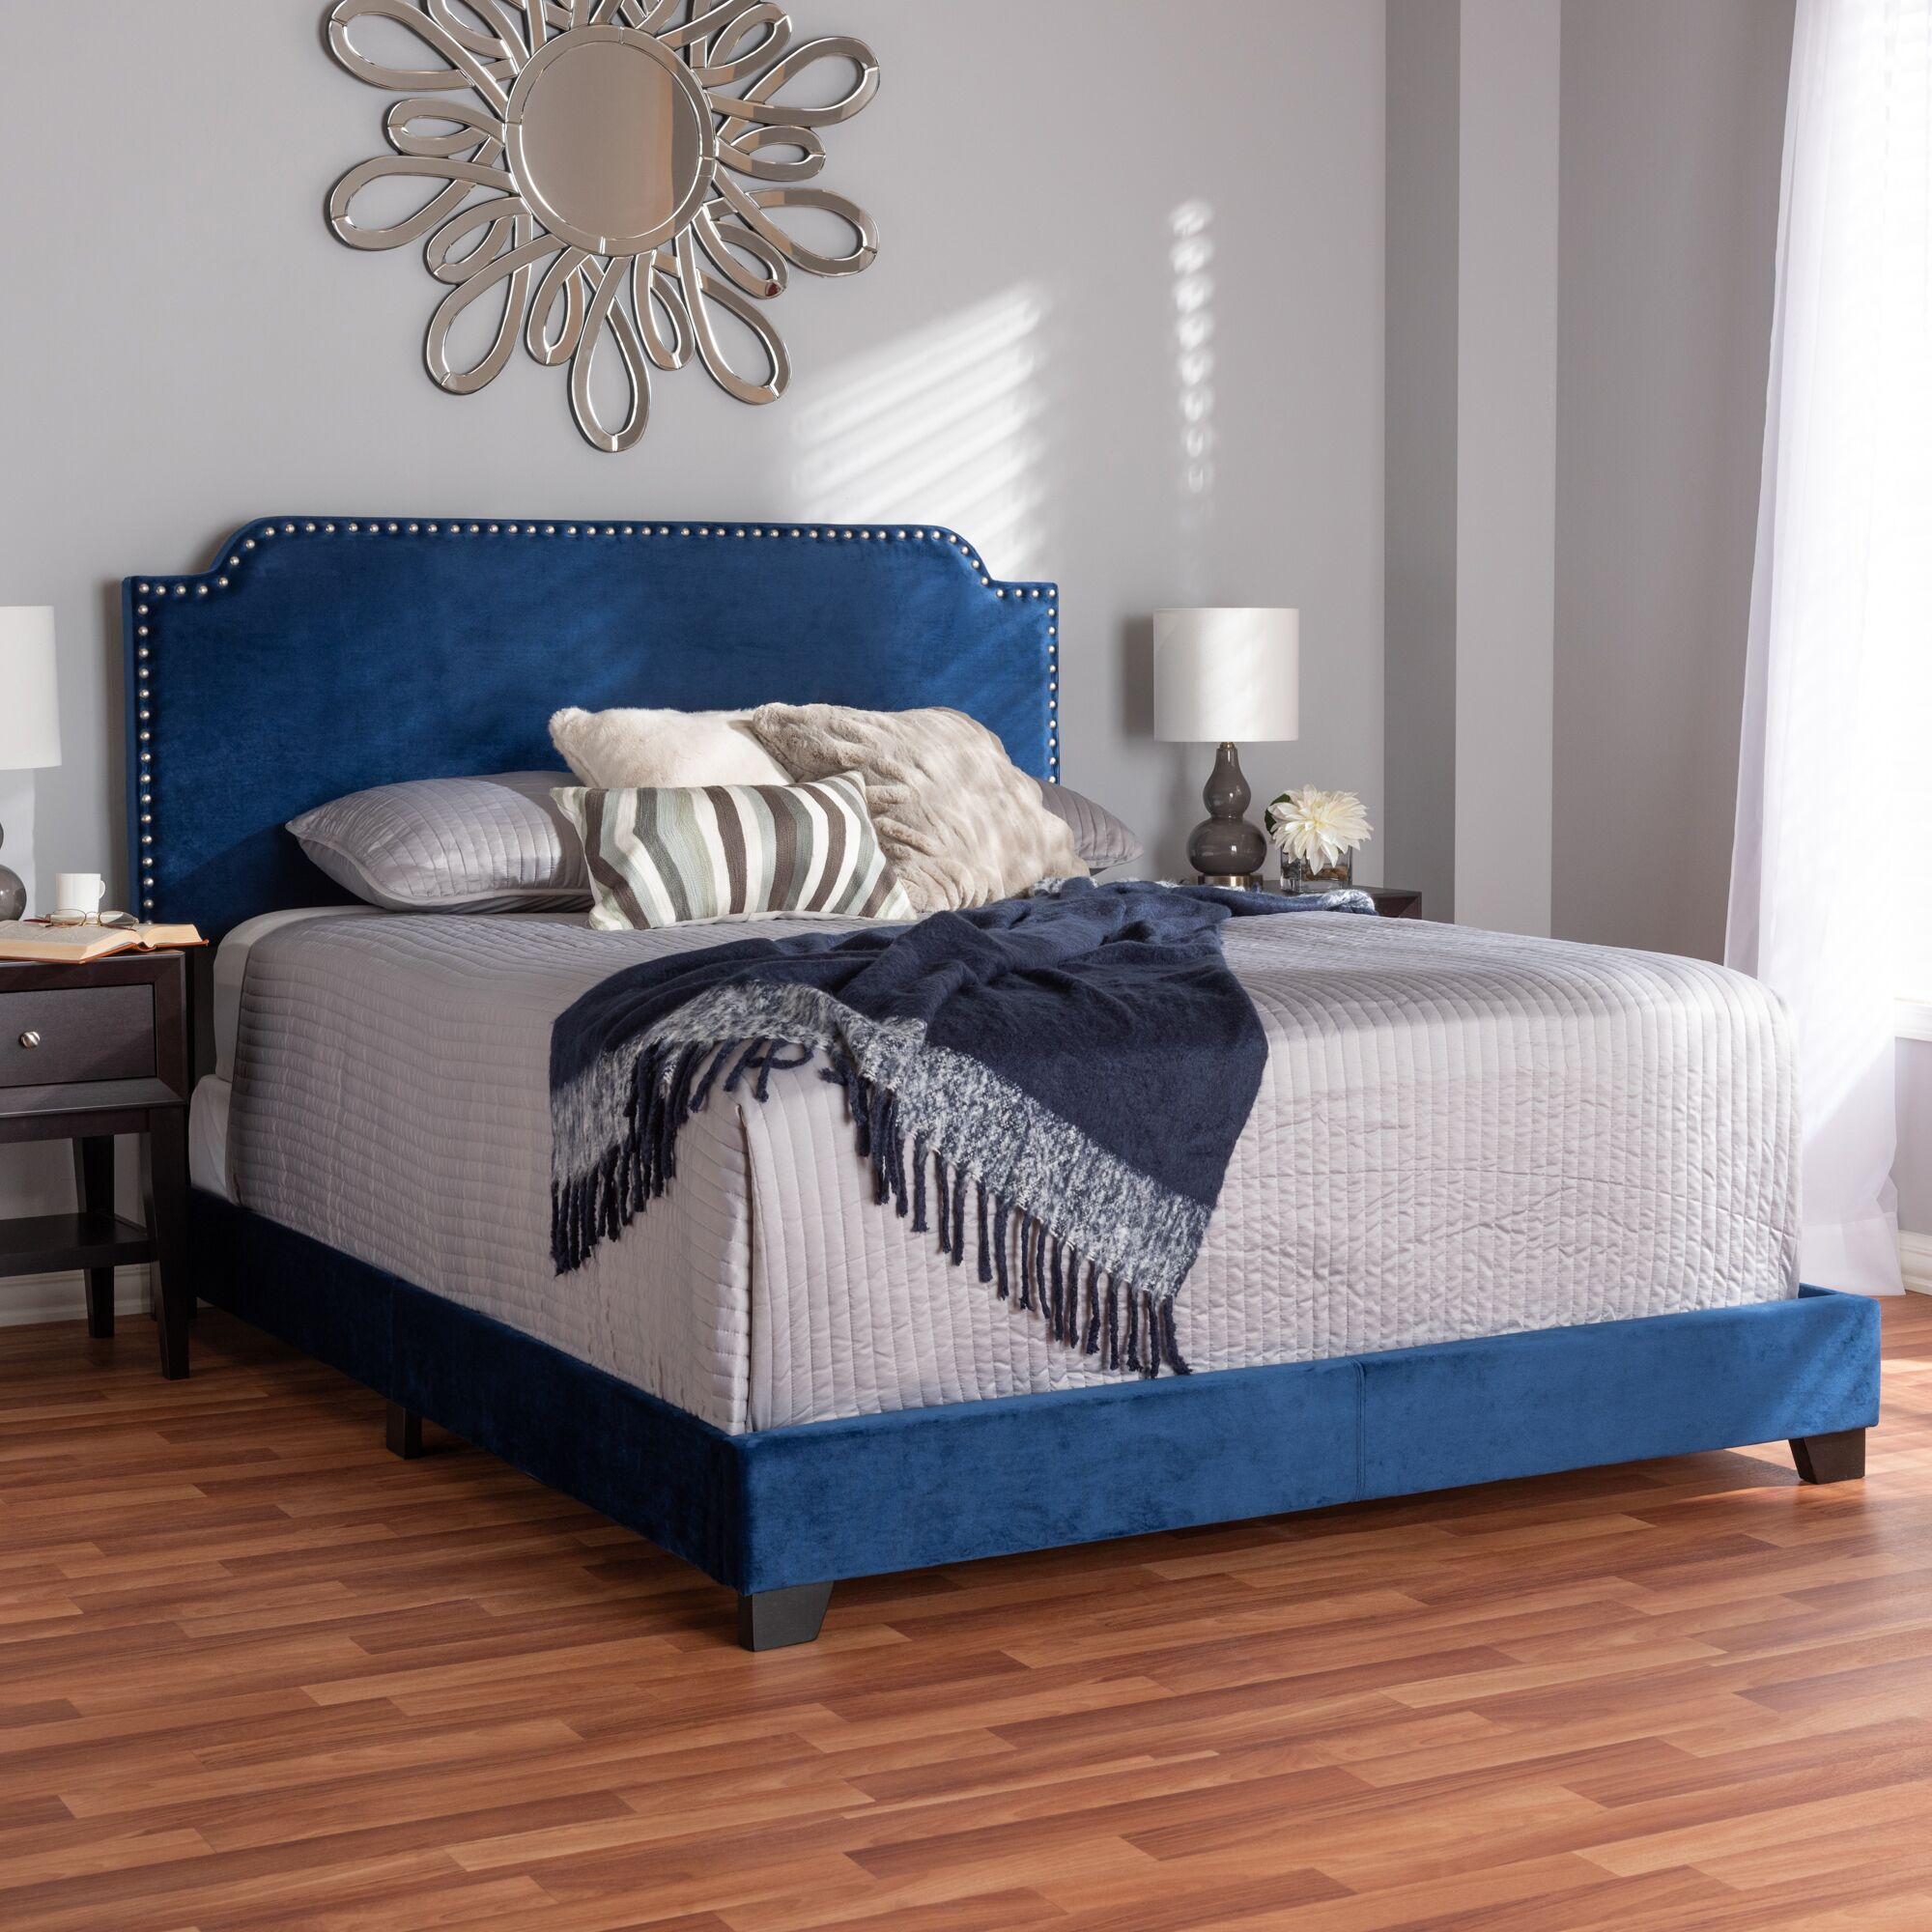 Voigt Upholstered Panel Bed Color: Navy Blue, Size: Queen